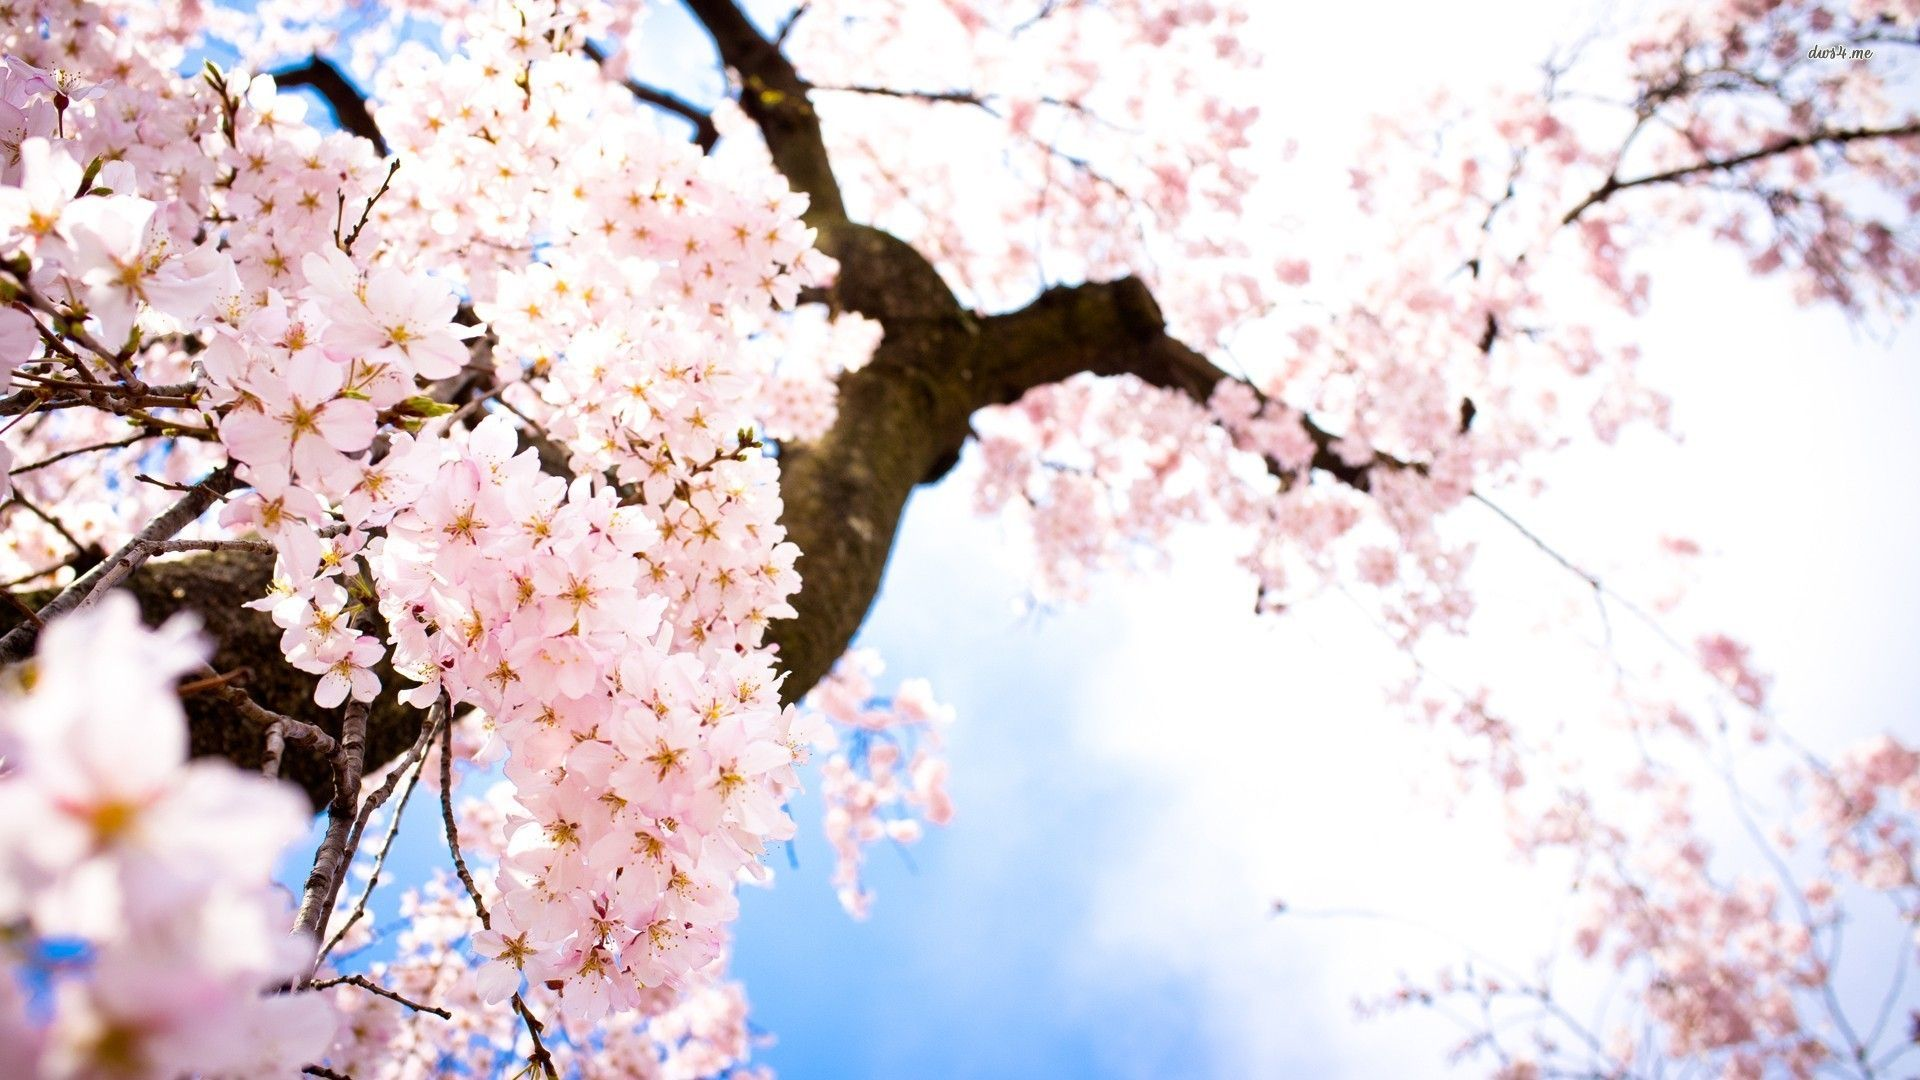 Cherry blossoms wallpaper Flower wallpapers Hoa